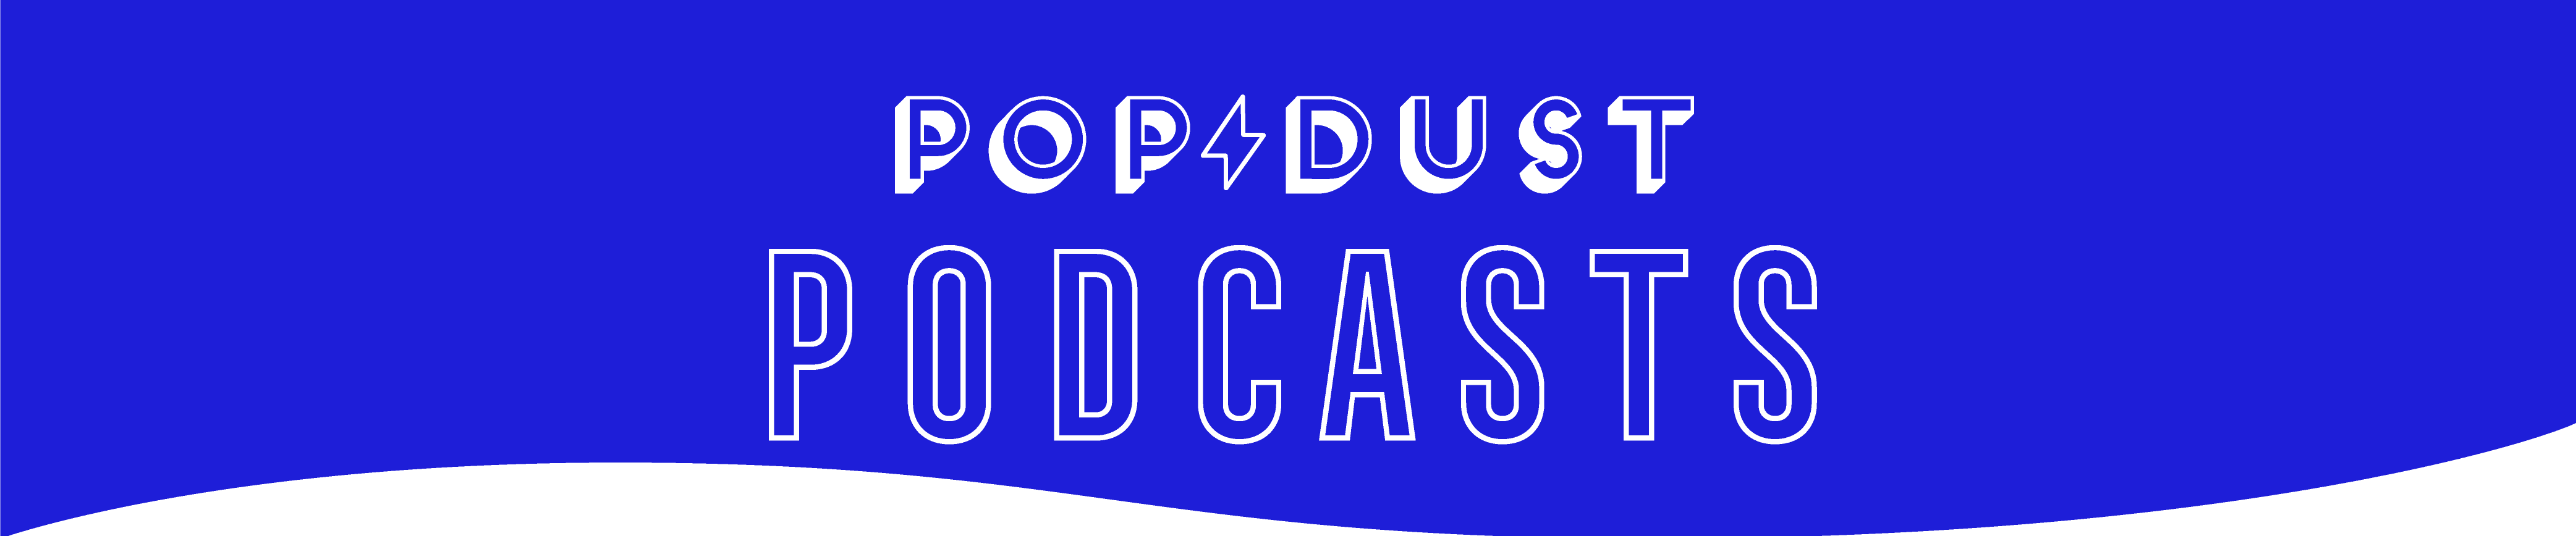 Popdust podcasts